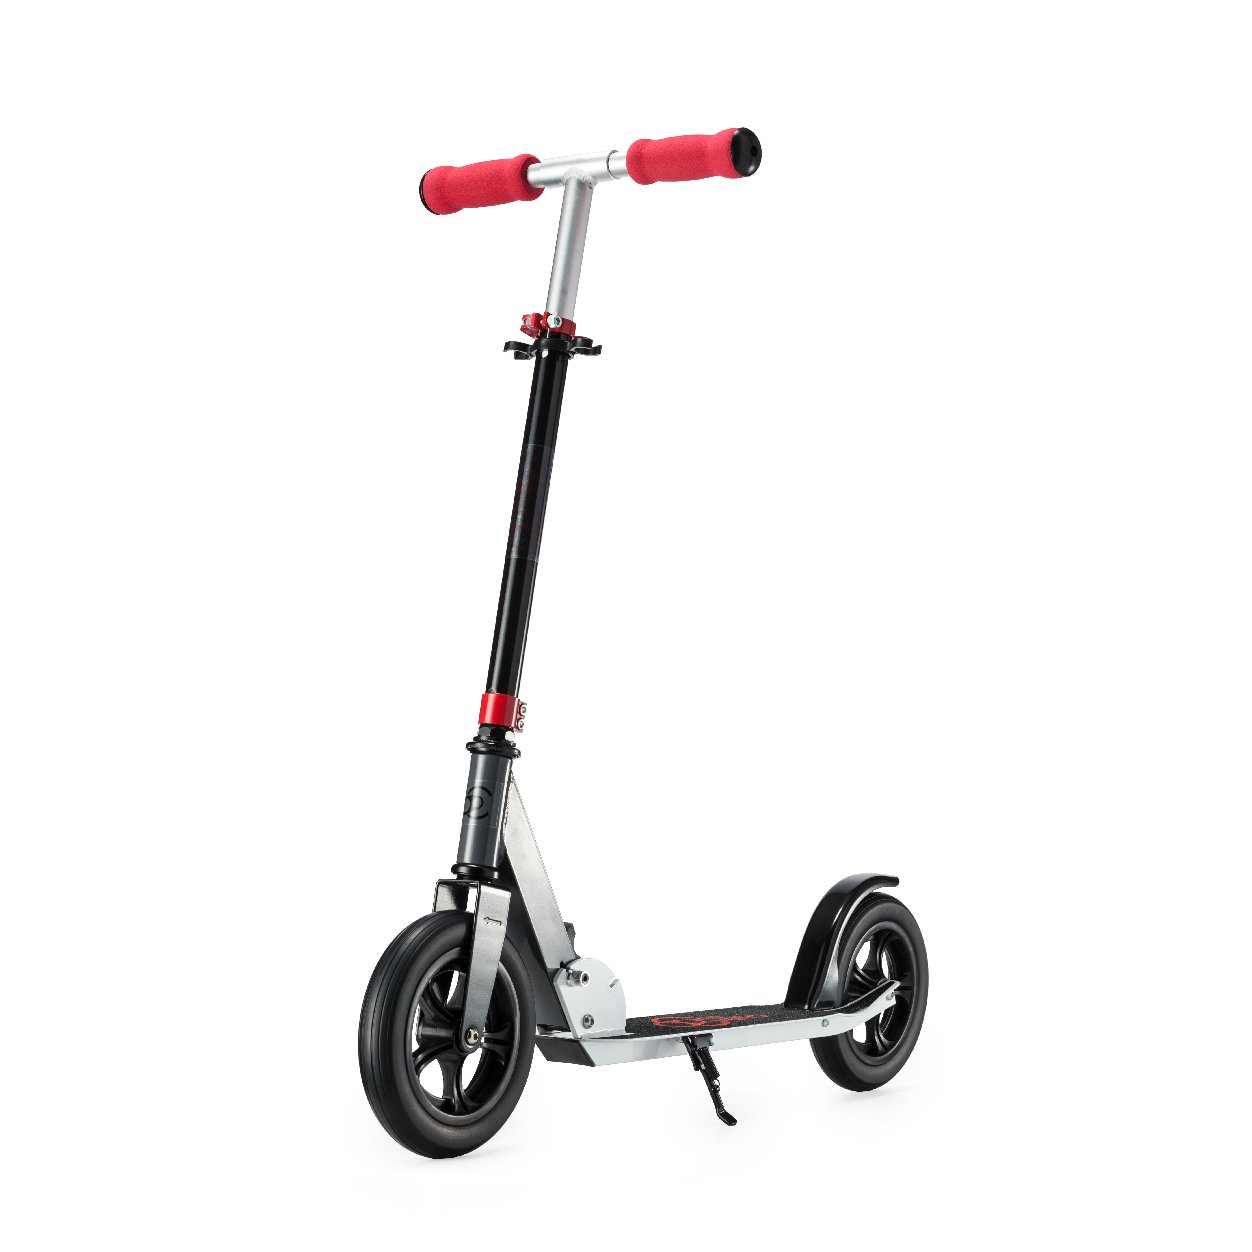 Kick Scooter Red with Front Suspension � Via Velo 200mm Foldable Top Kick Scooter For Adults Teens and Kids, Lightweight and Sturdy and Fat 2-Wheel Scooter, Portable and Absorbing Road Vibrations